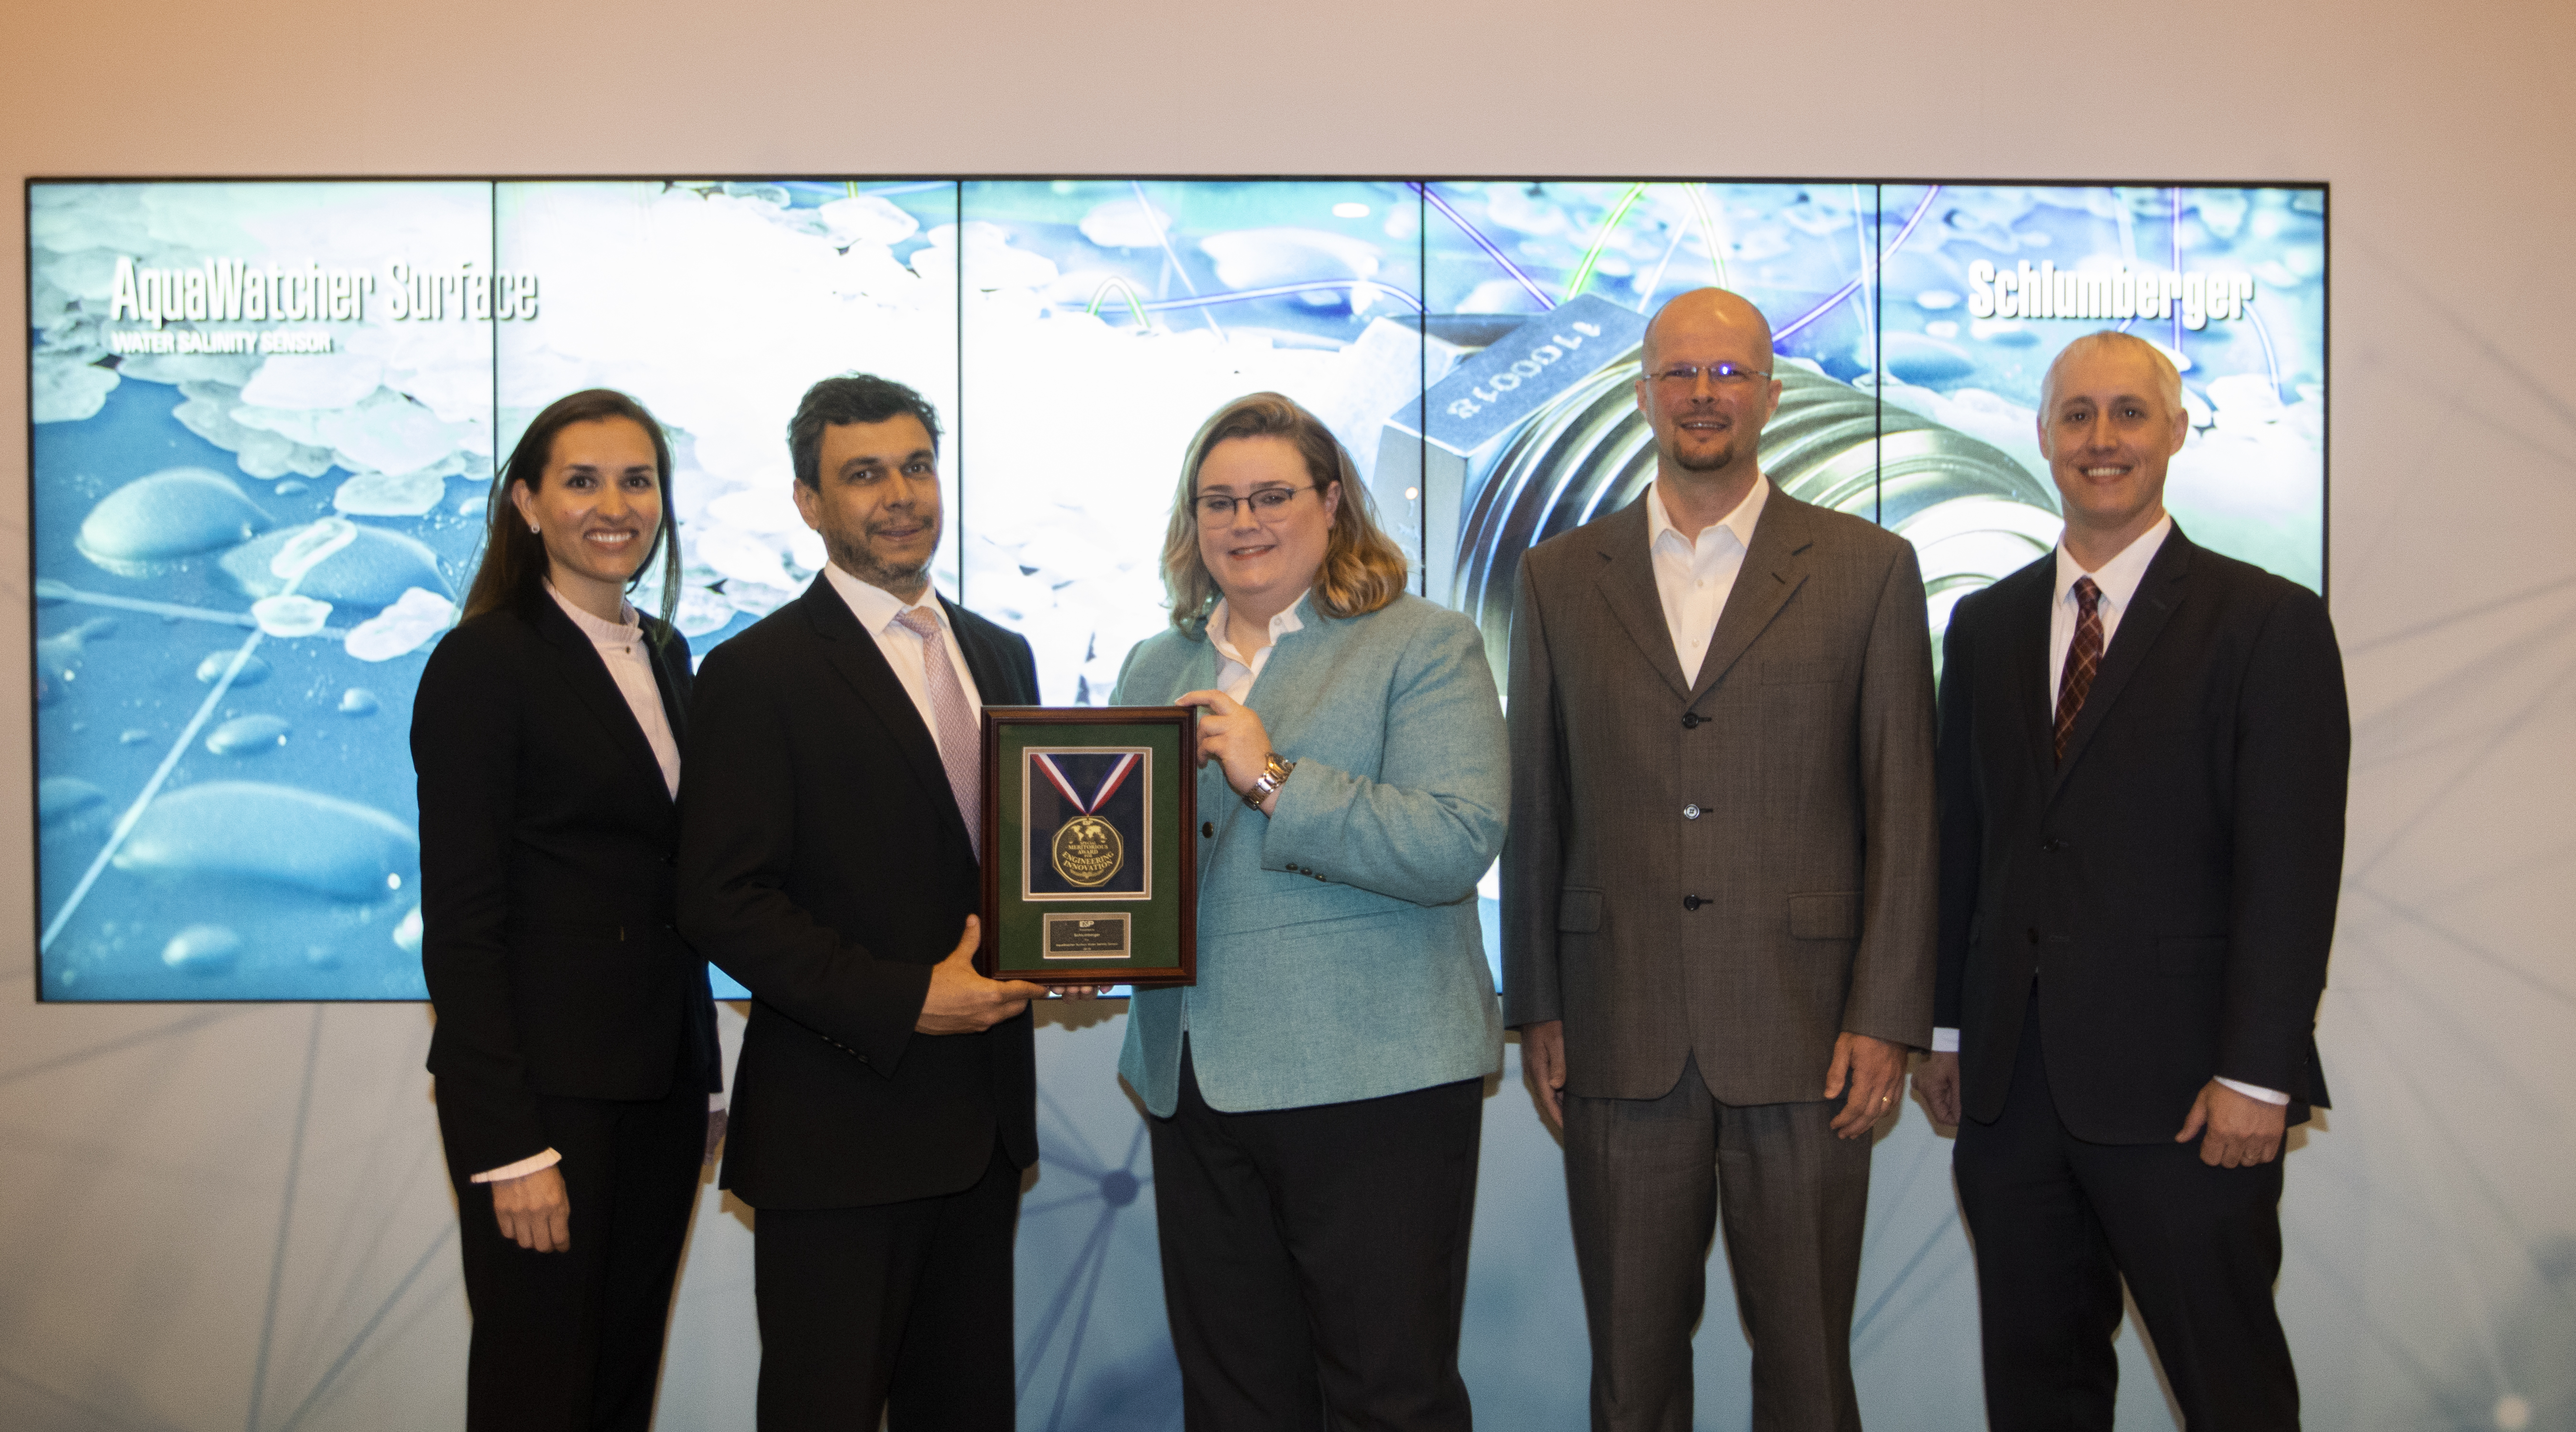 E&P's Jennifer Presley (middle) presented (from left to right) Schlumberger's Laure Mandrou, Wallace Pescarini, Baptiste Germond and Bryan Zimdars an award for the company's AquaWatcher Surface Water Salinity Sensor, winner of the water management category.